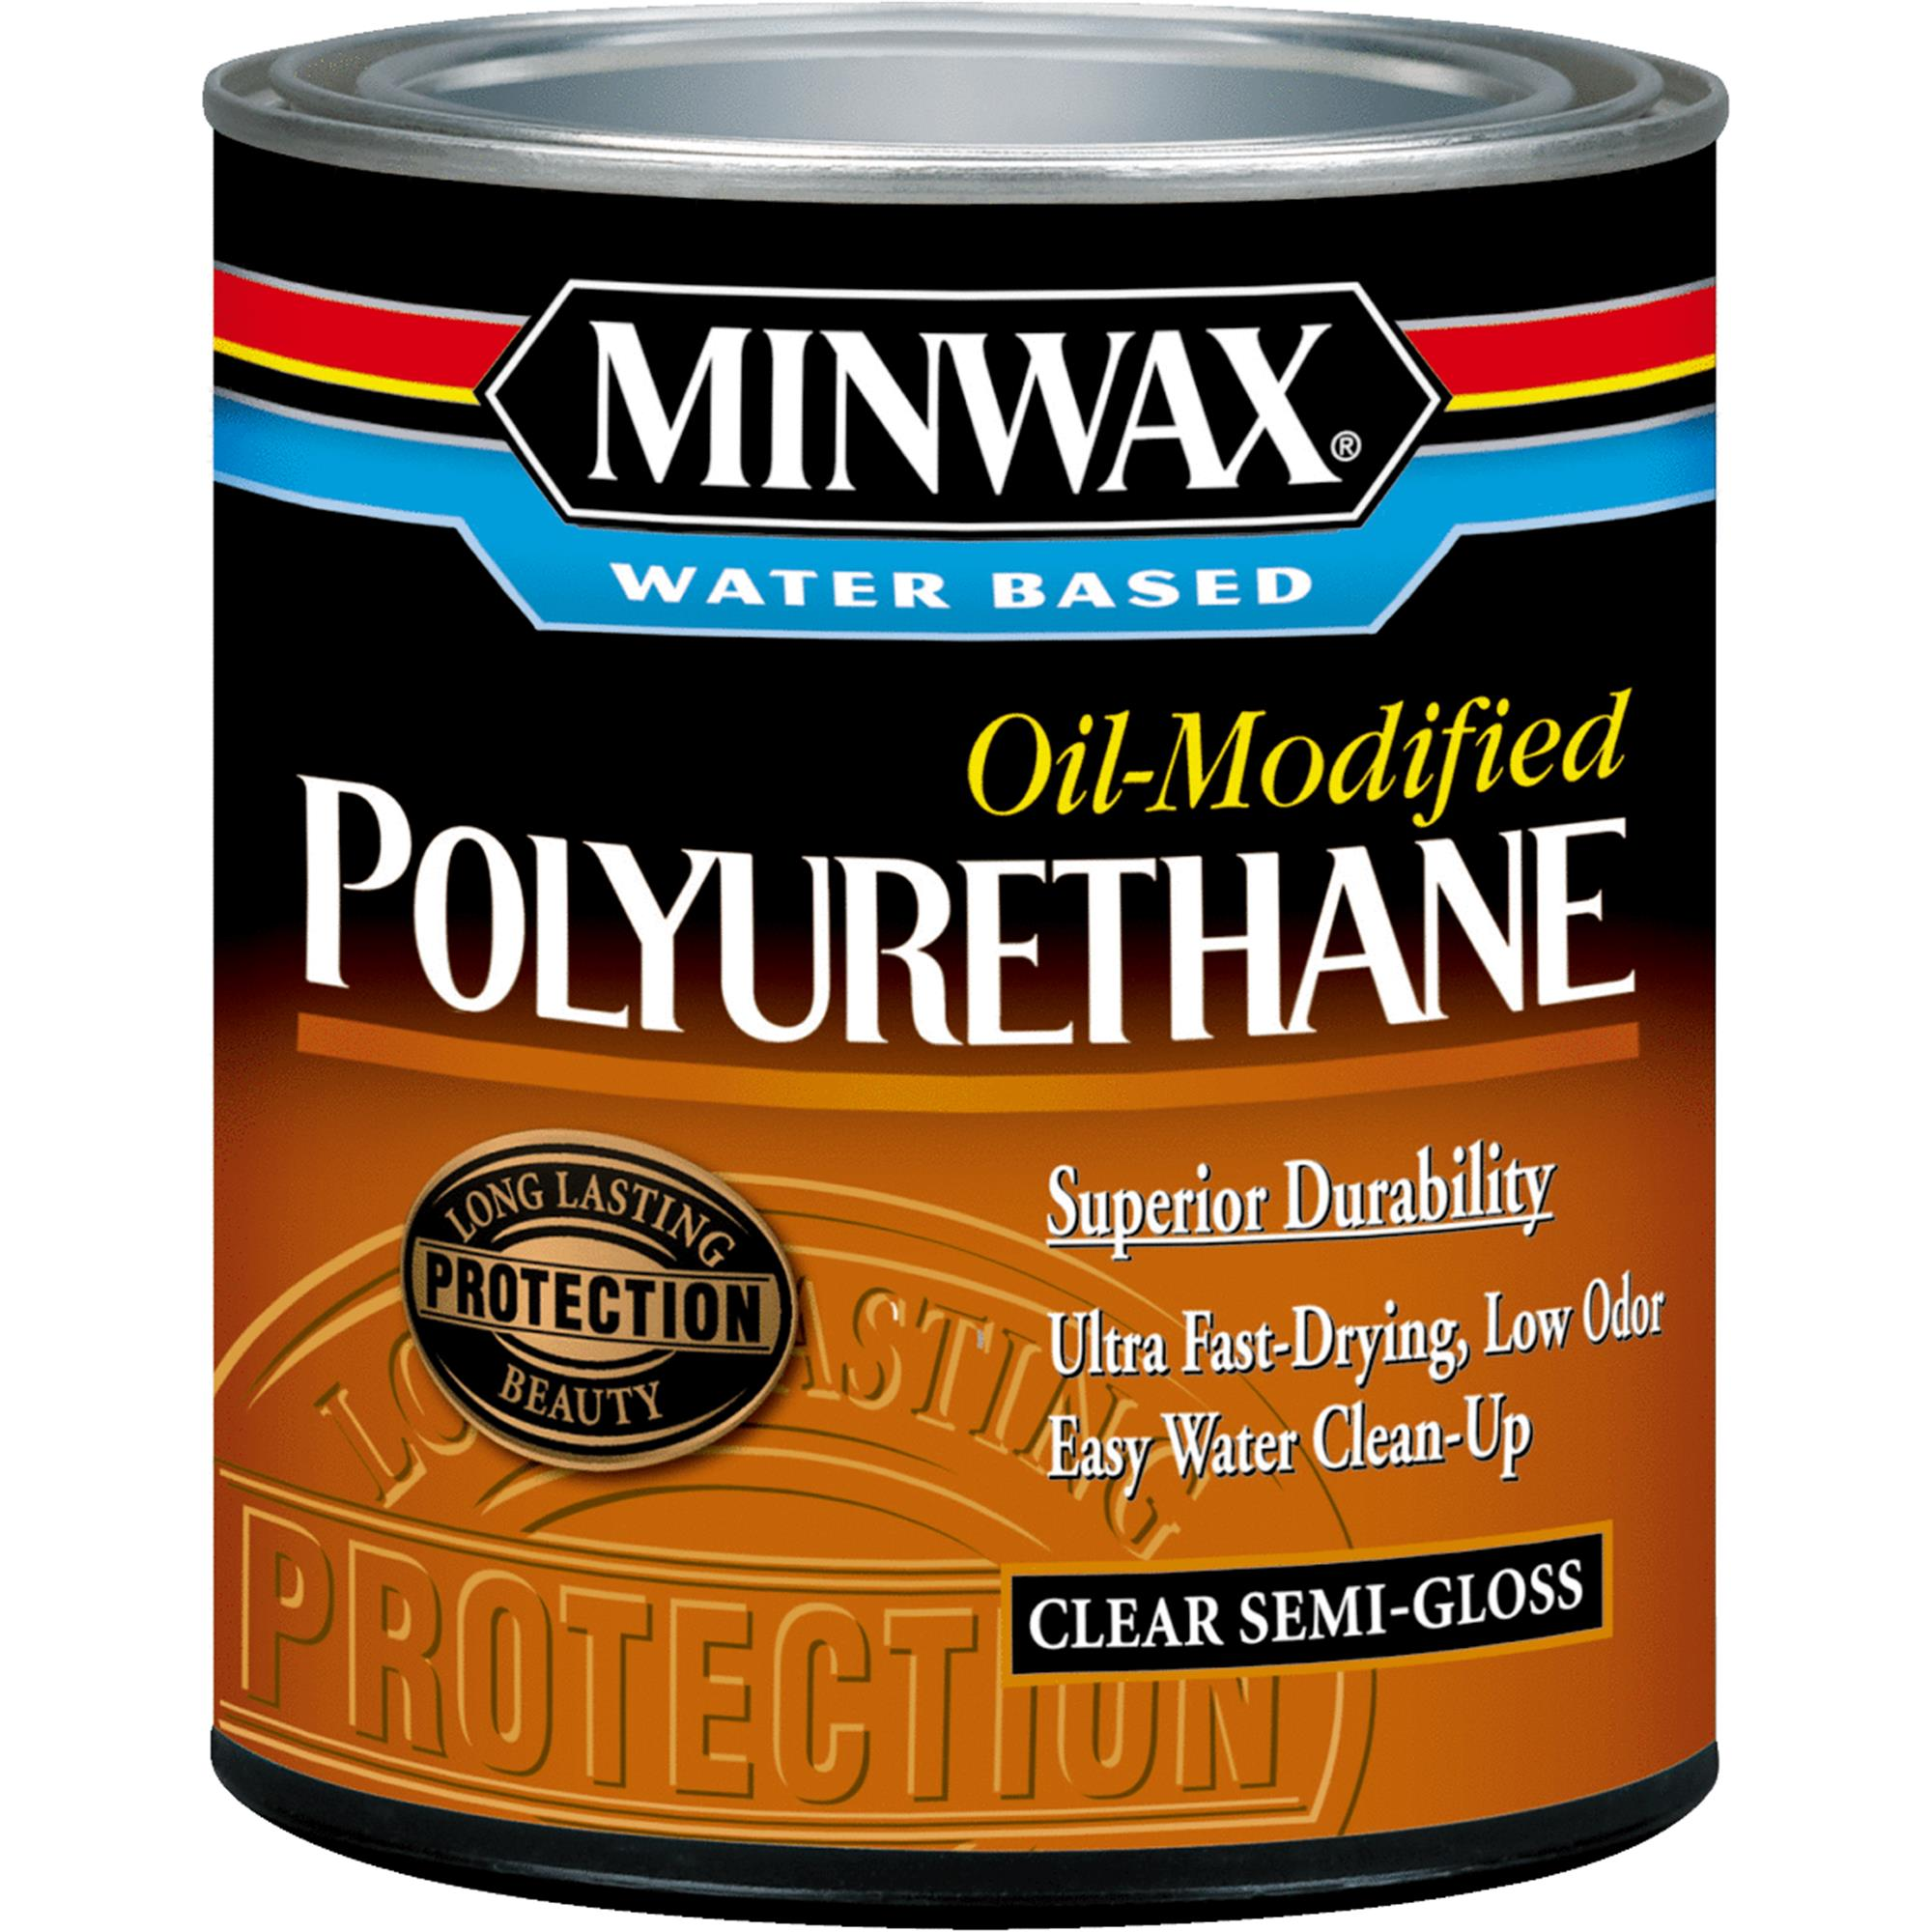 Minwax Water-Based, Oil-Modified Polyurethane Finish, 1 Qt, Semi-Gloss